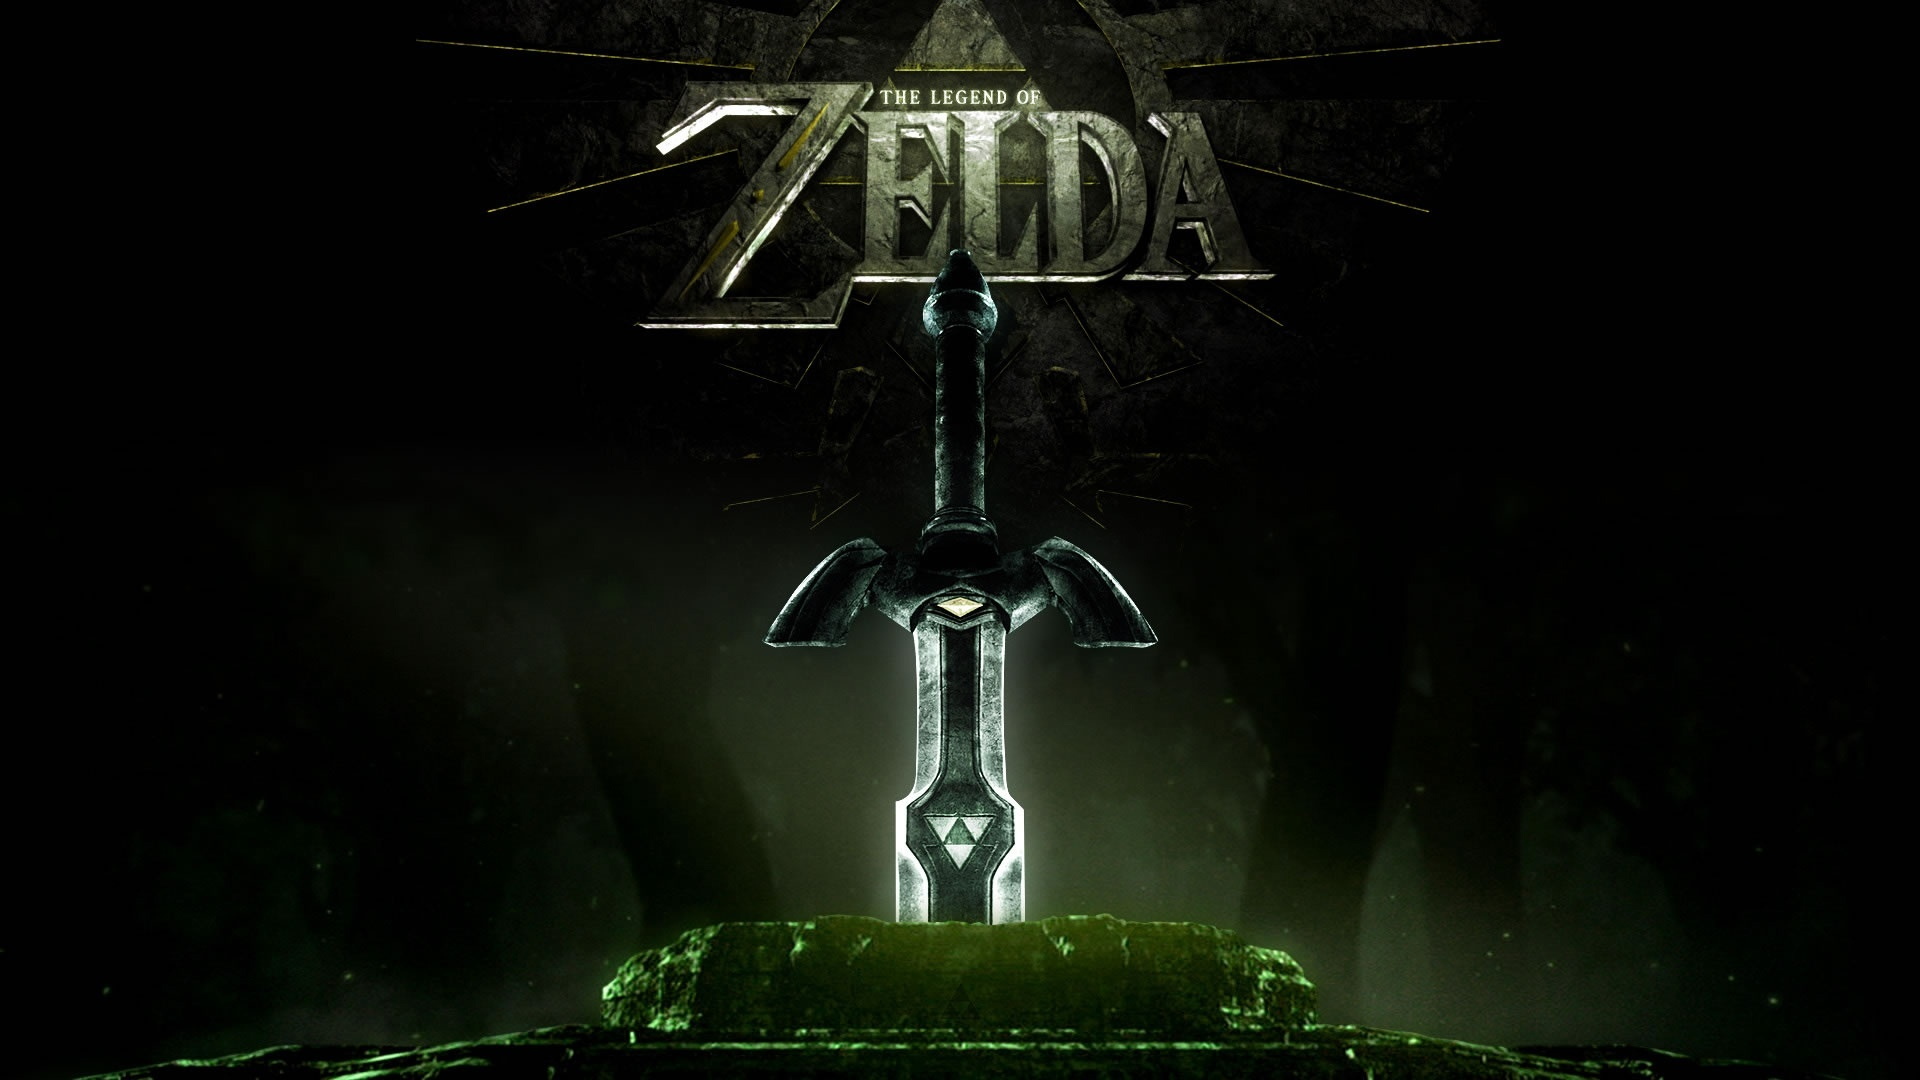 The Legend Of Zelda 1920 x 1080 Download Close 1920x1080